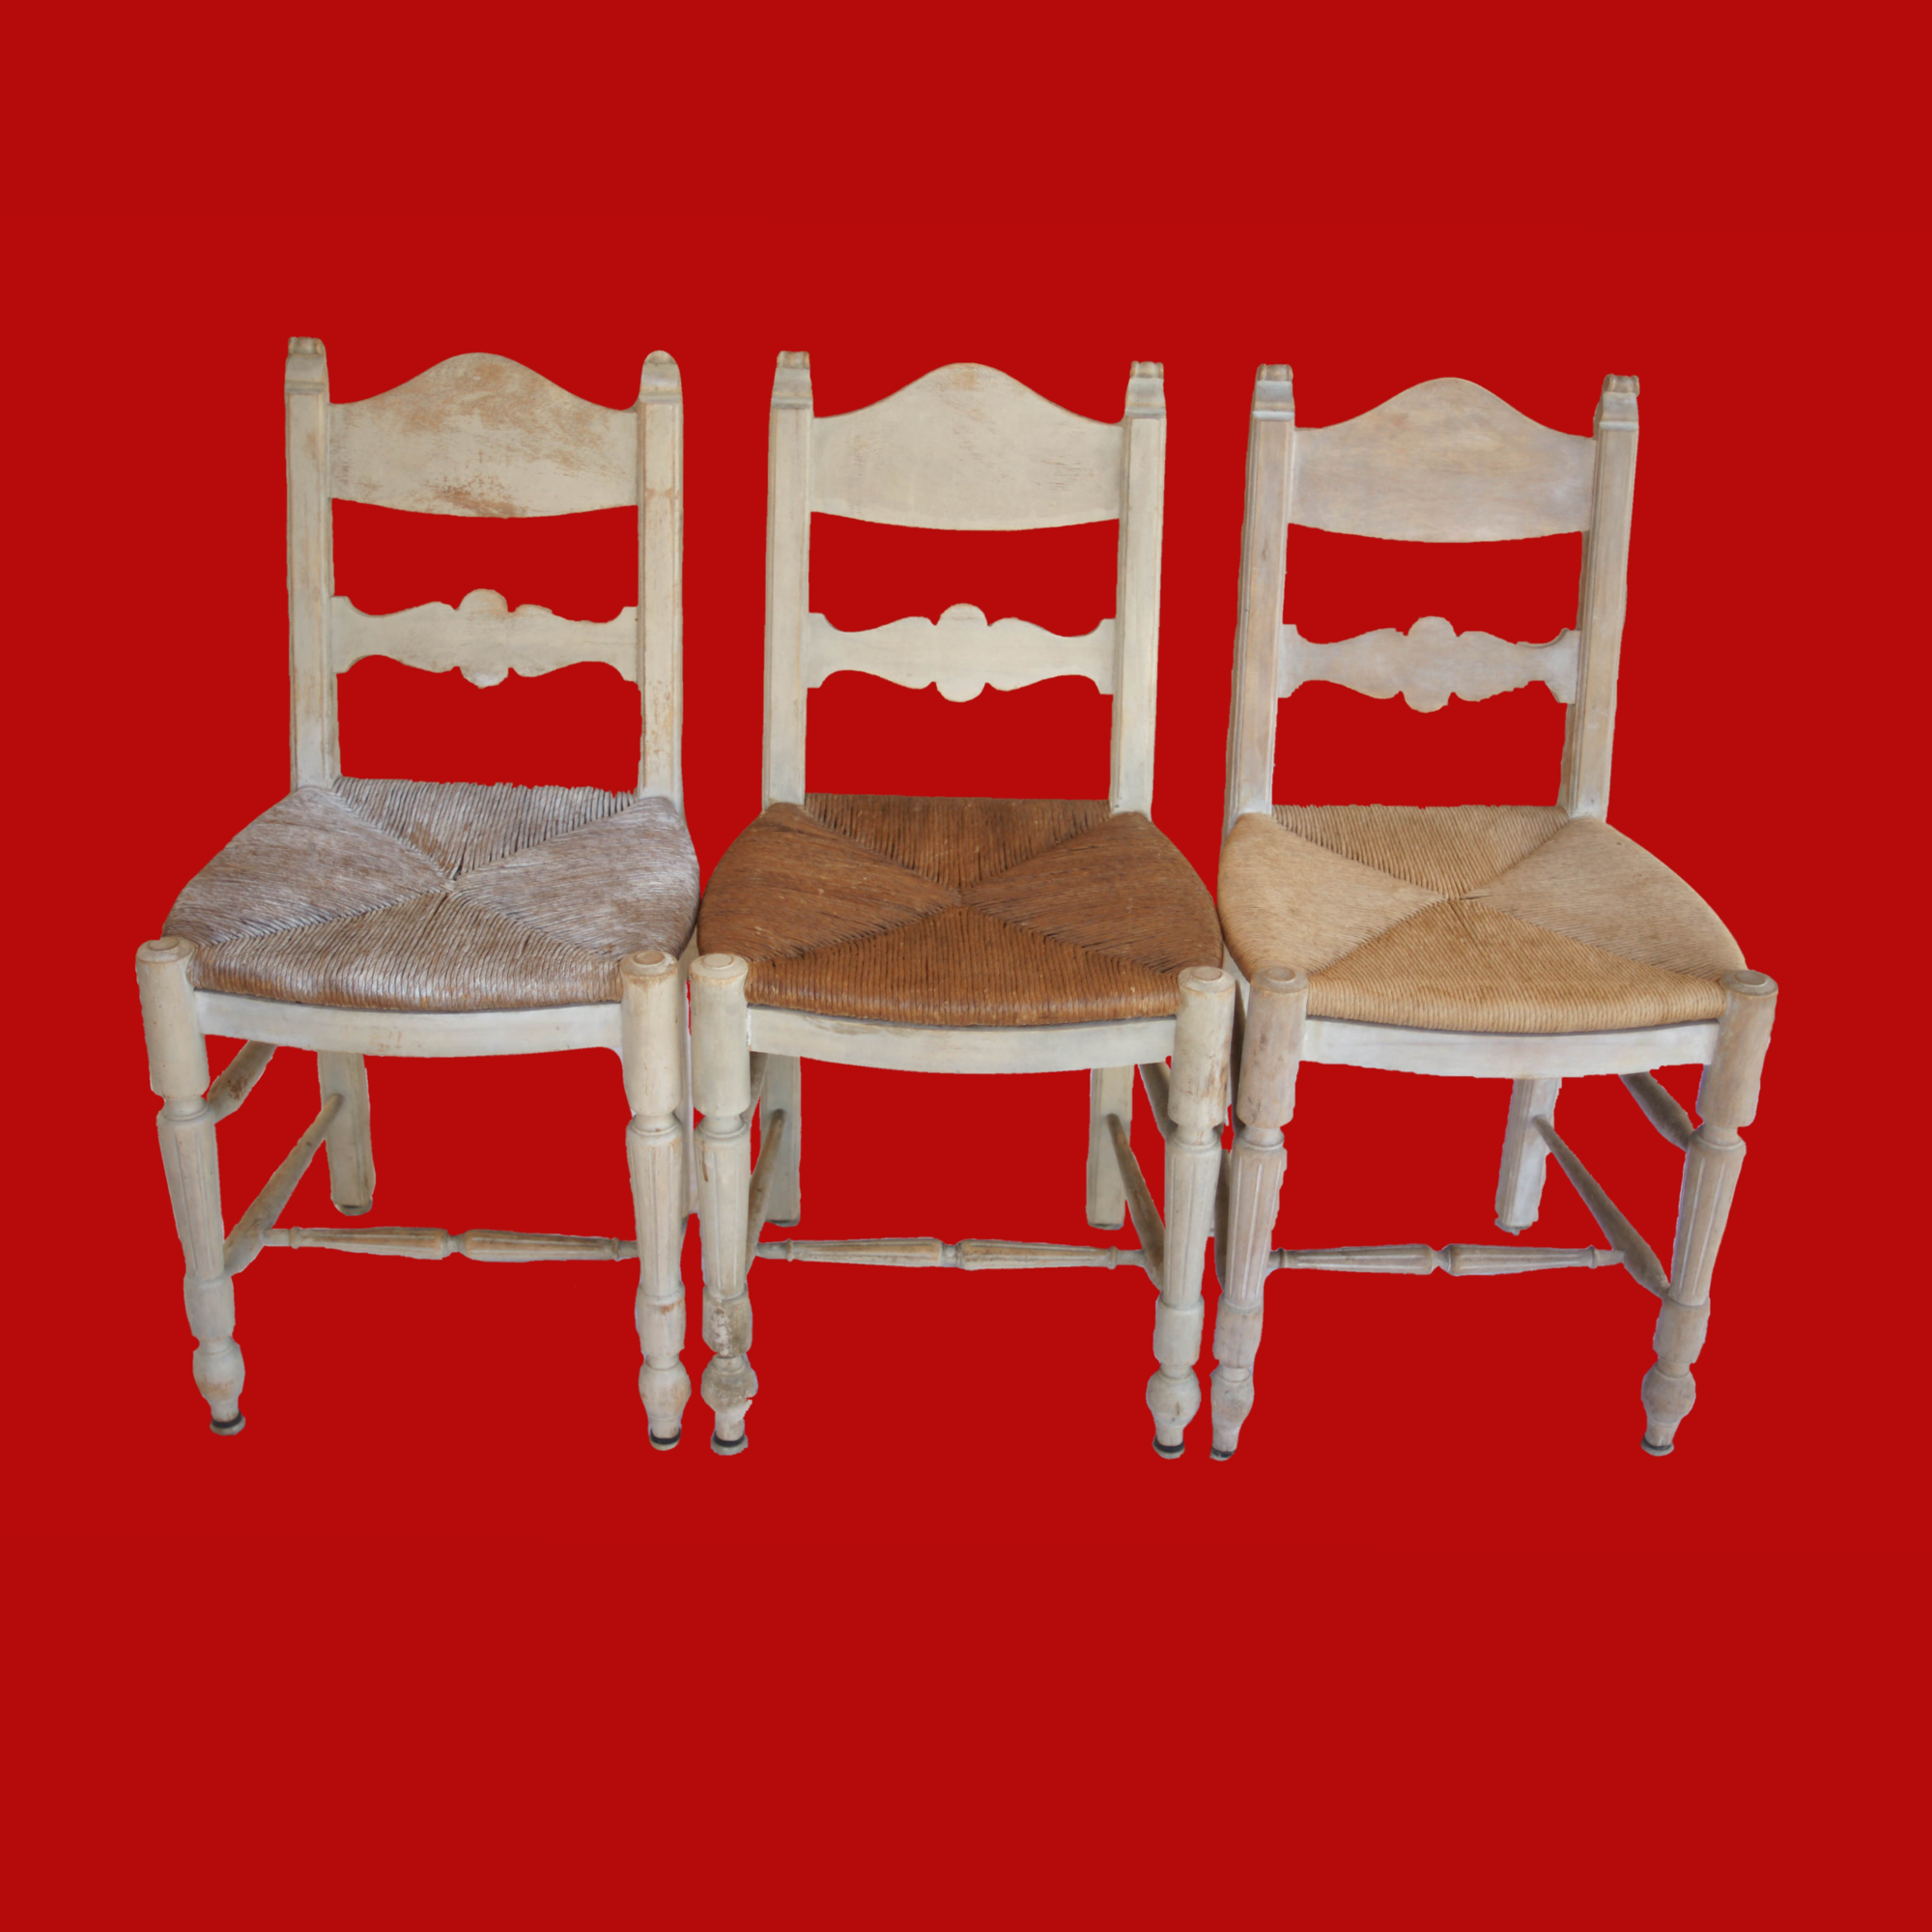 20% OFF -3 Rush Chairs Mix and Match Seats Bleached Wood Frames 00095E